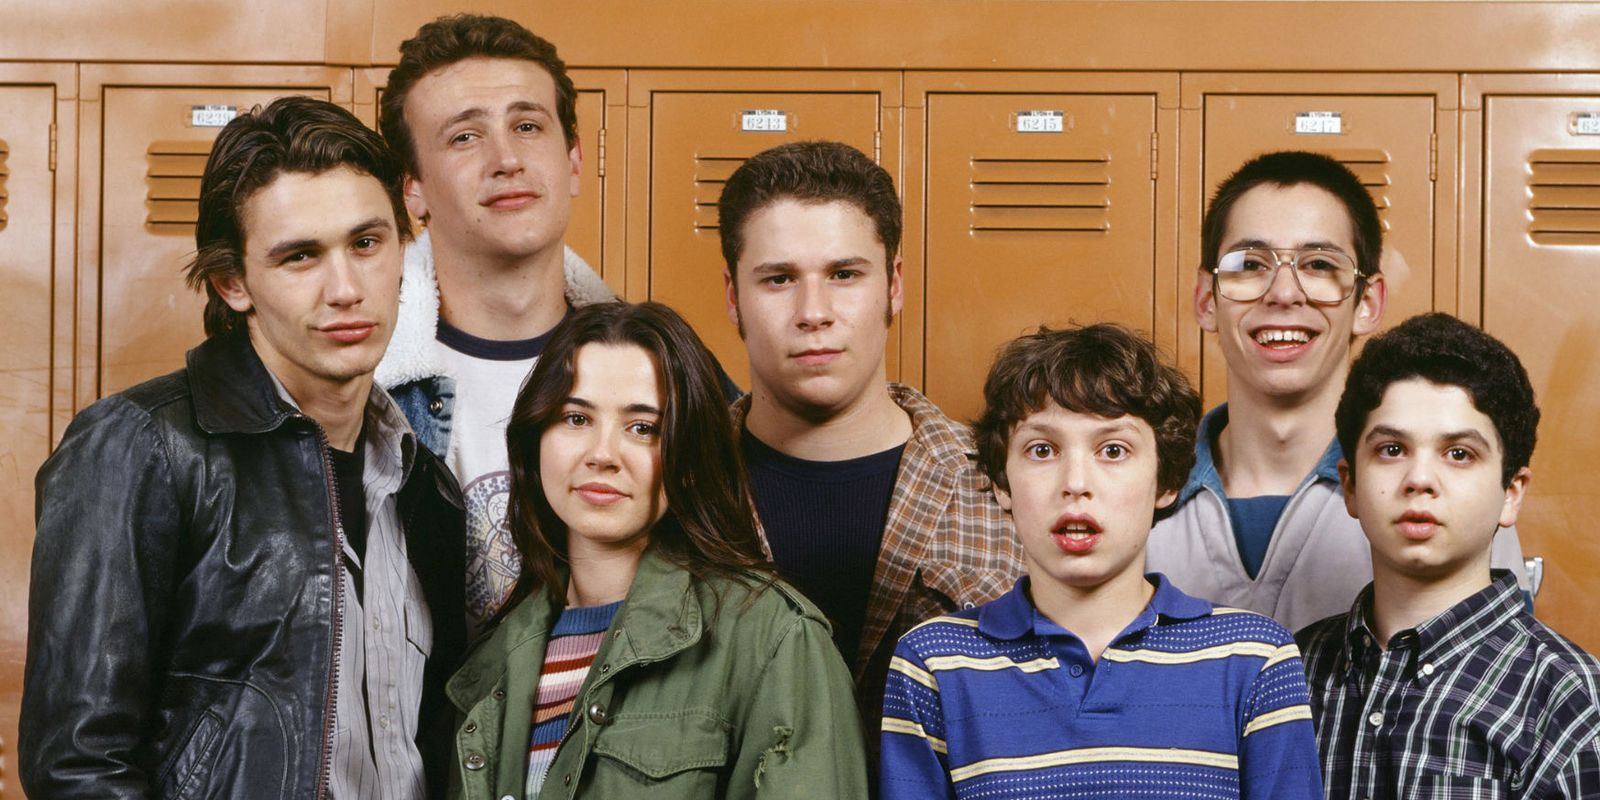 freaks and geeks had the most successful cast and crew of any tv